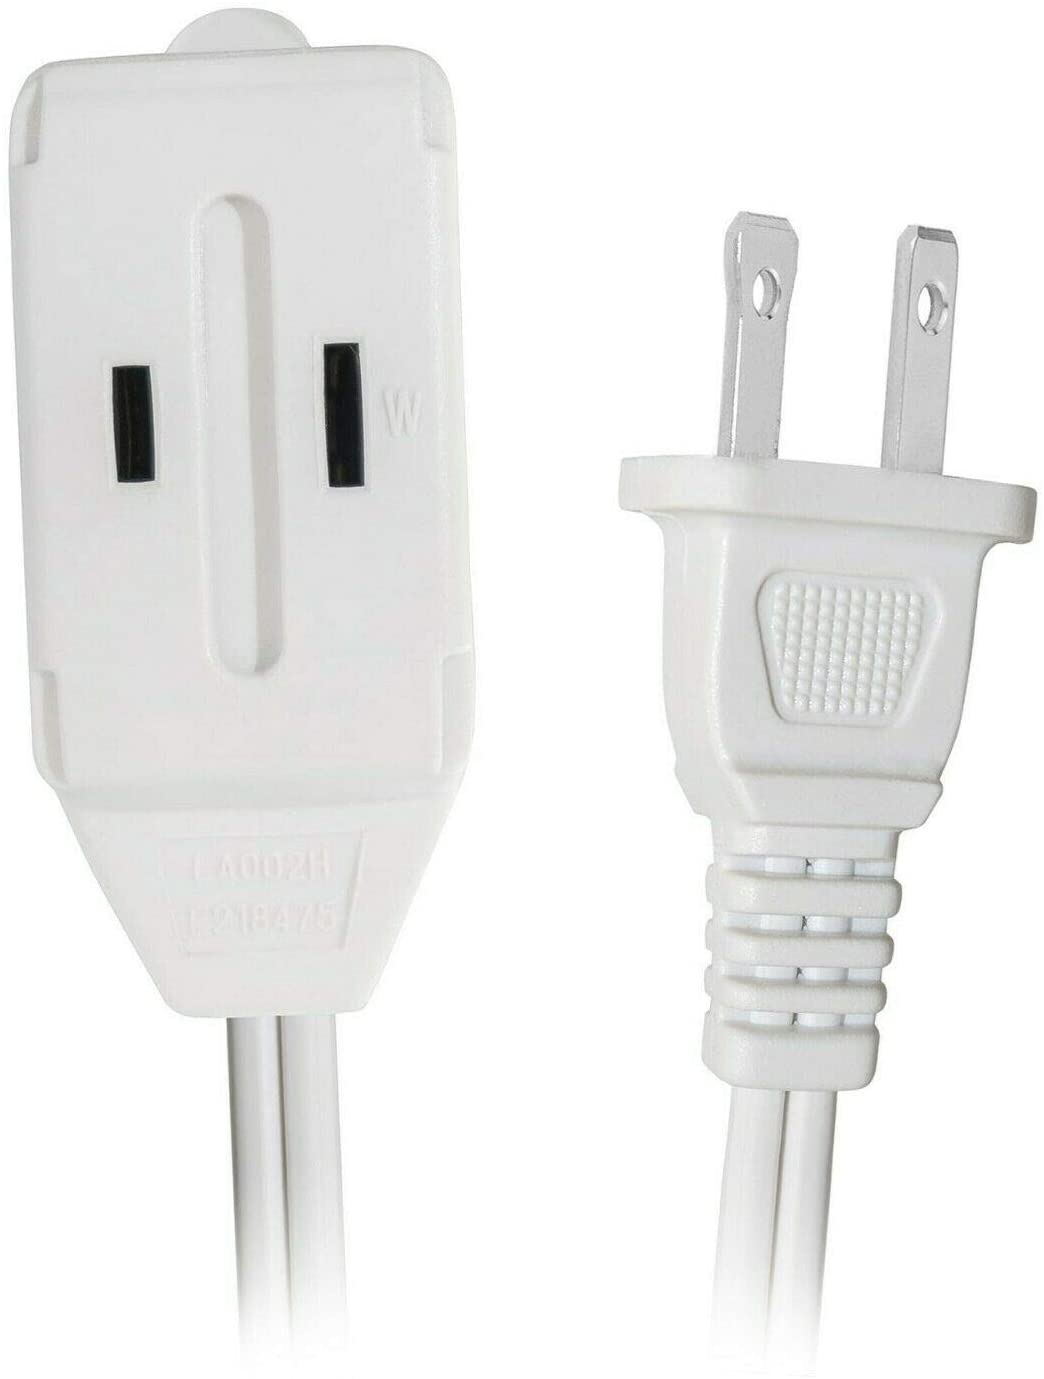 BoltLion BL-697539 9 Feet 3 Outlet Extension Cord (16 AWG, 2 Prong, 13A, 125V & 1,625W) w/Outlet Protection Cover - White, 2 Pack